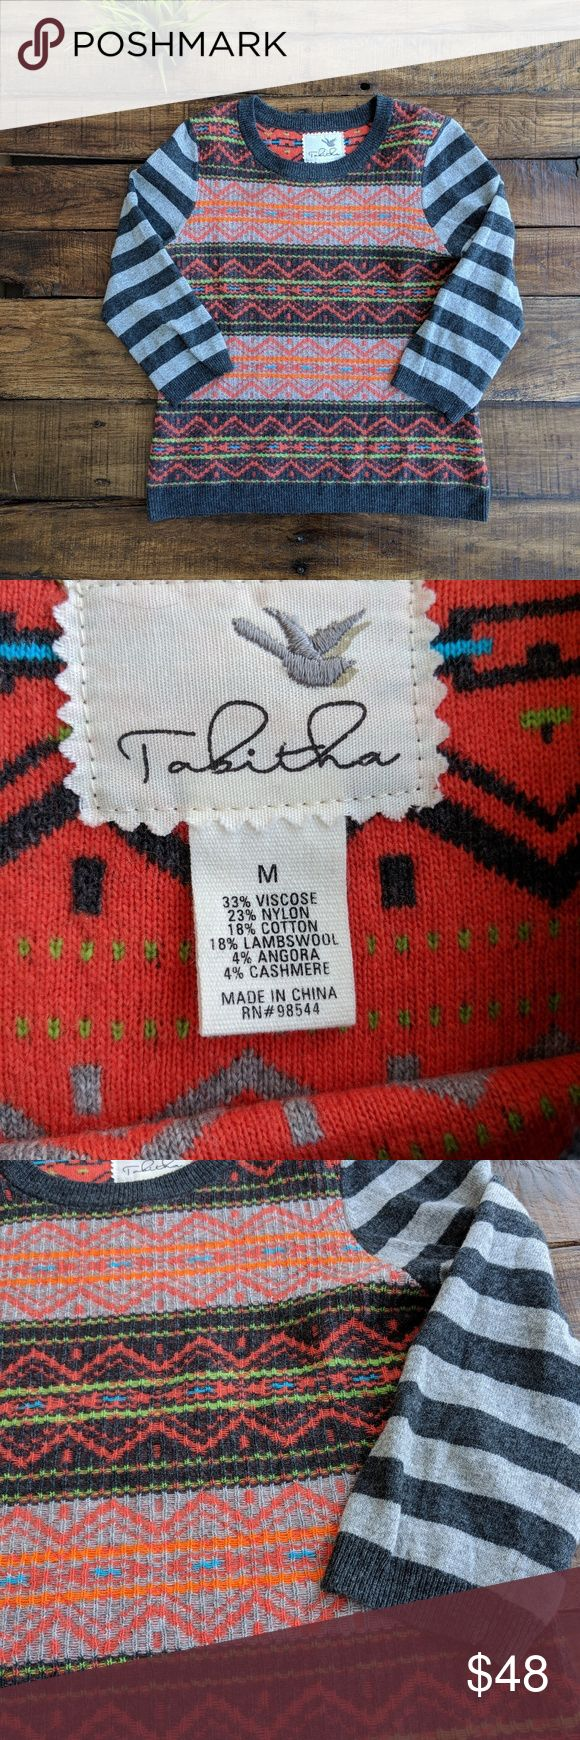 Anthro Tabitha Colorful Fair Isle Pullover Sweater Super cute, great condition Anthropologie's Tabitha neon colorful fair isle/zig zag knit and design pullover sweater with striped sleeves. Perfect light weight sweater for fall or layering.  MEASUREMENTS (INCHES): CHEST: 18 LENGTH: 23 SLEEVE: 18 1/2 SHOULDER: 14 Anthropologie Sweaters Crew & Scoop Necks